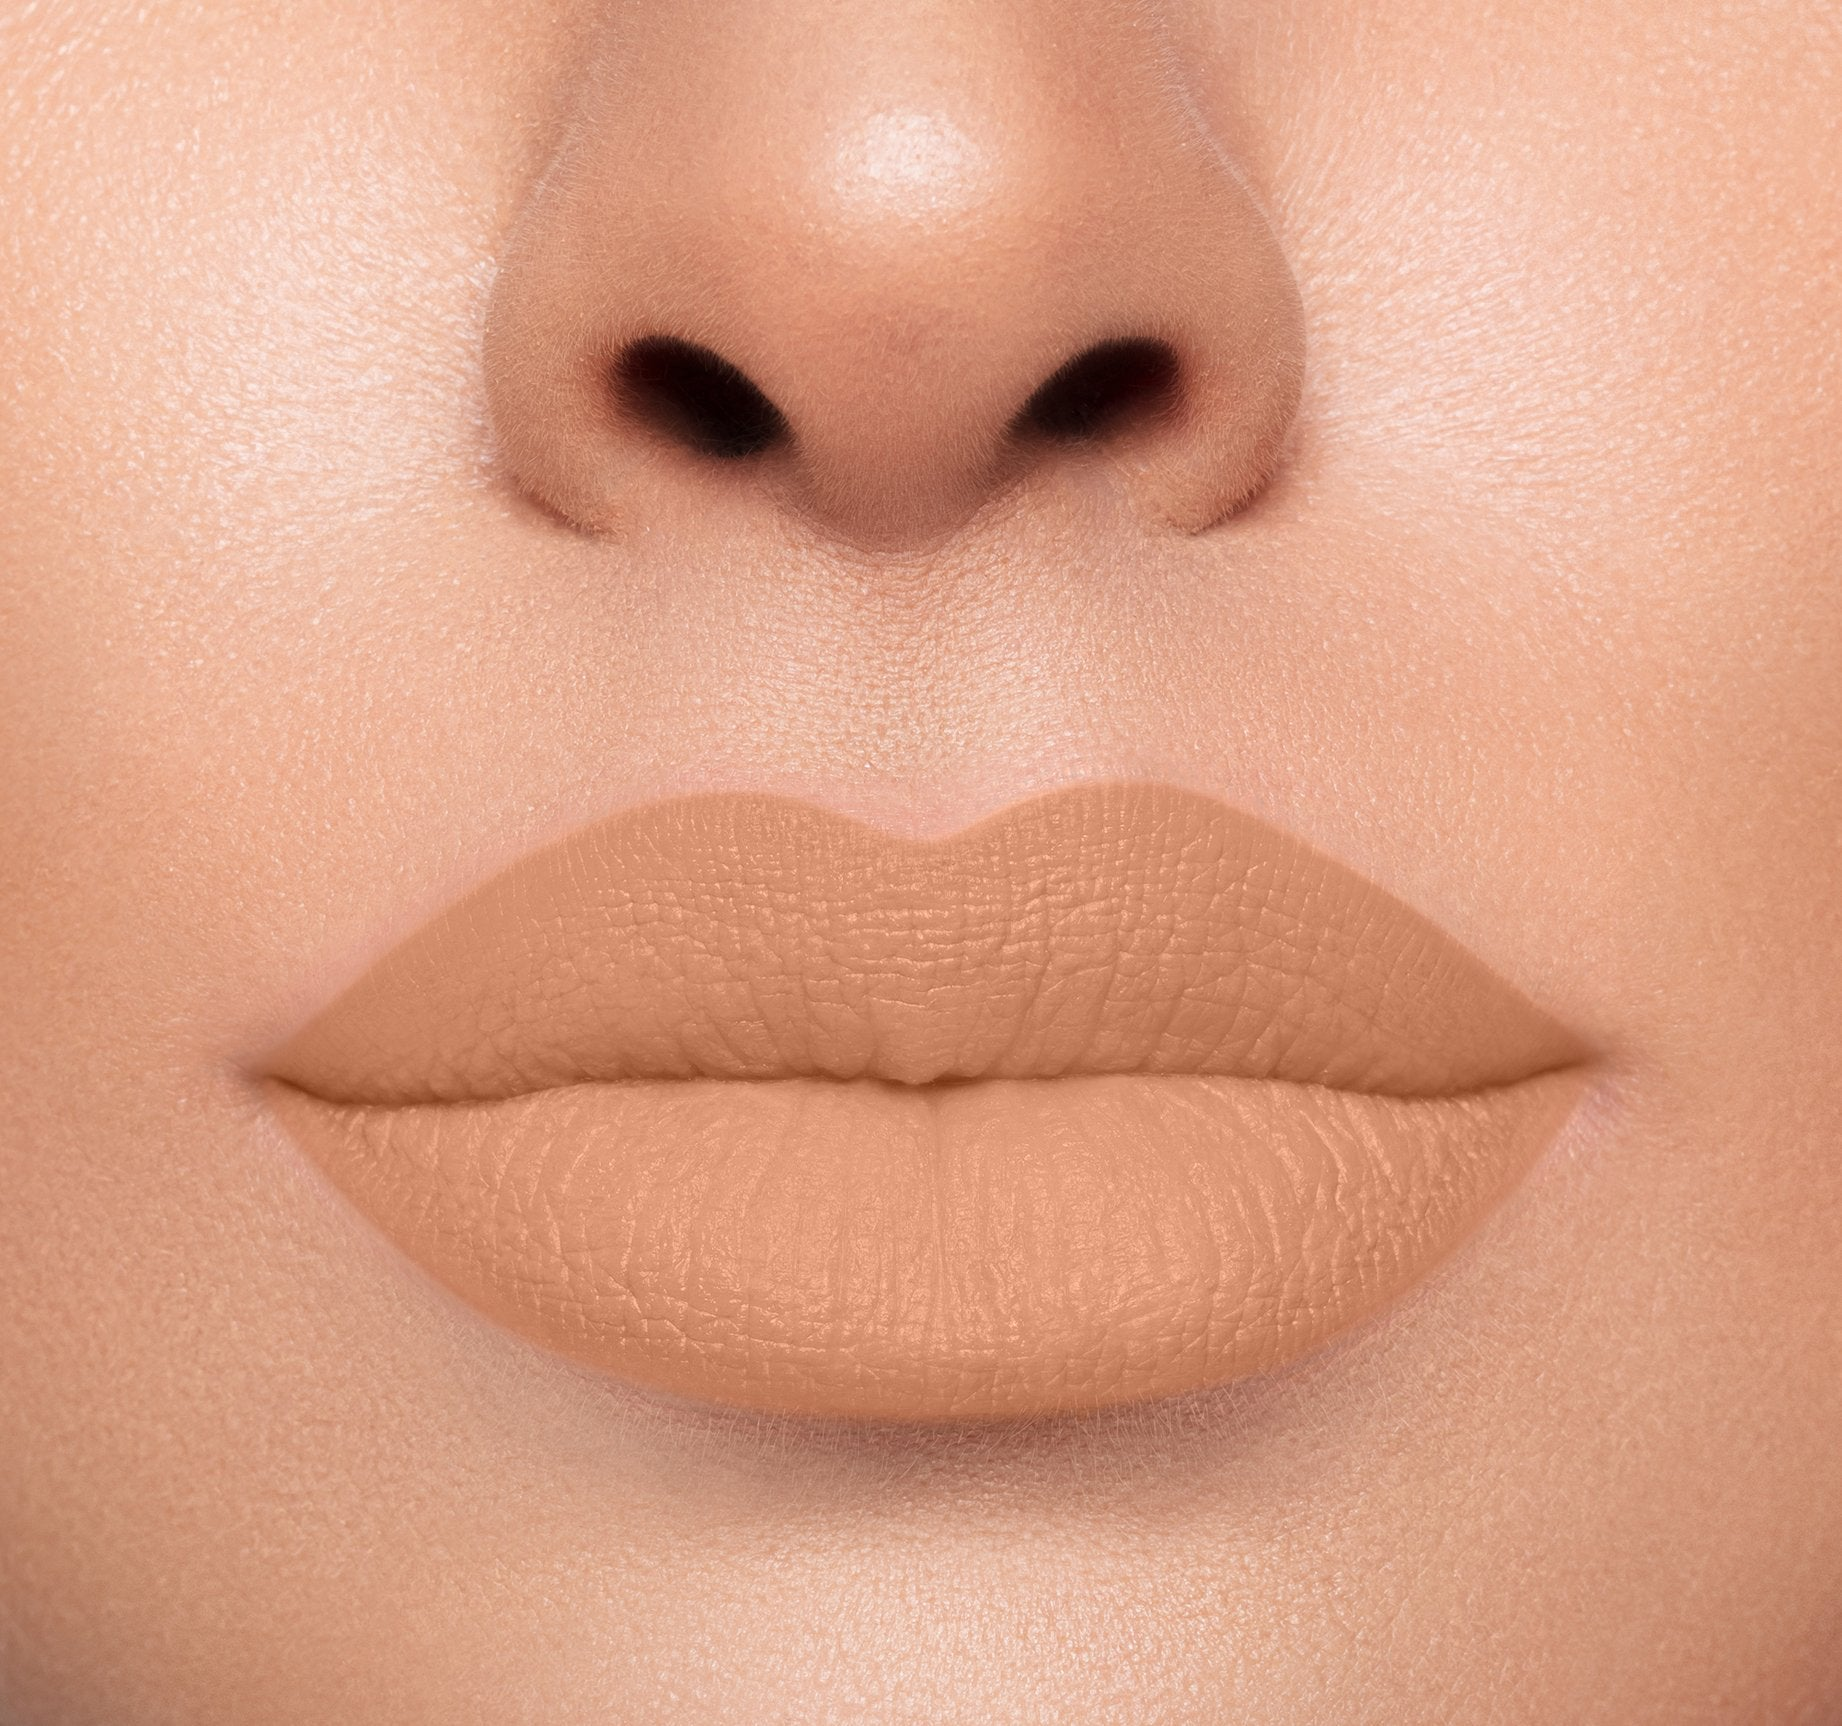 MEGA MATTE LIPSTICK - FIRST BASE ON MODEL, view larger image